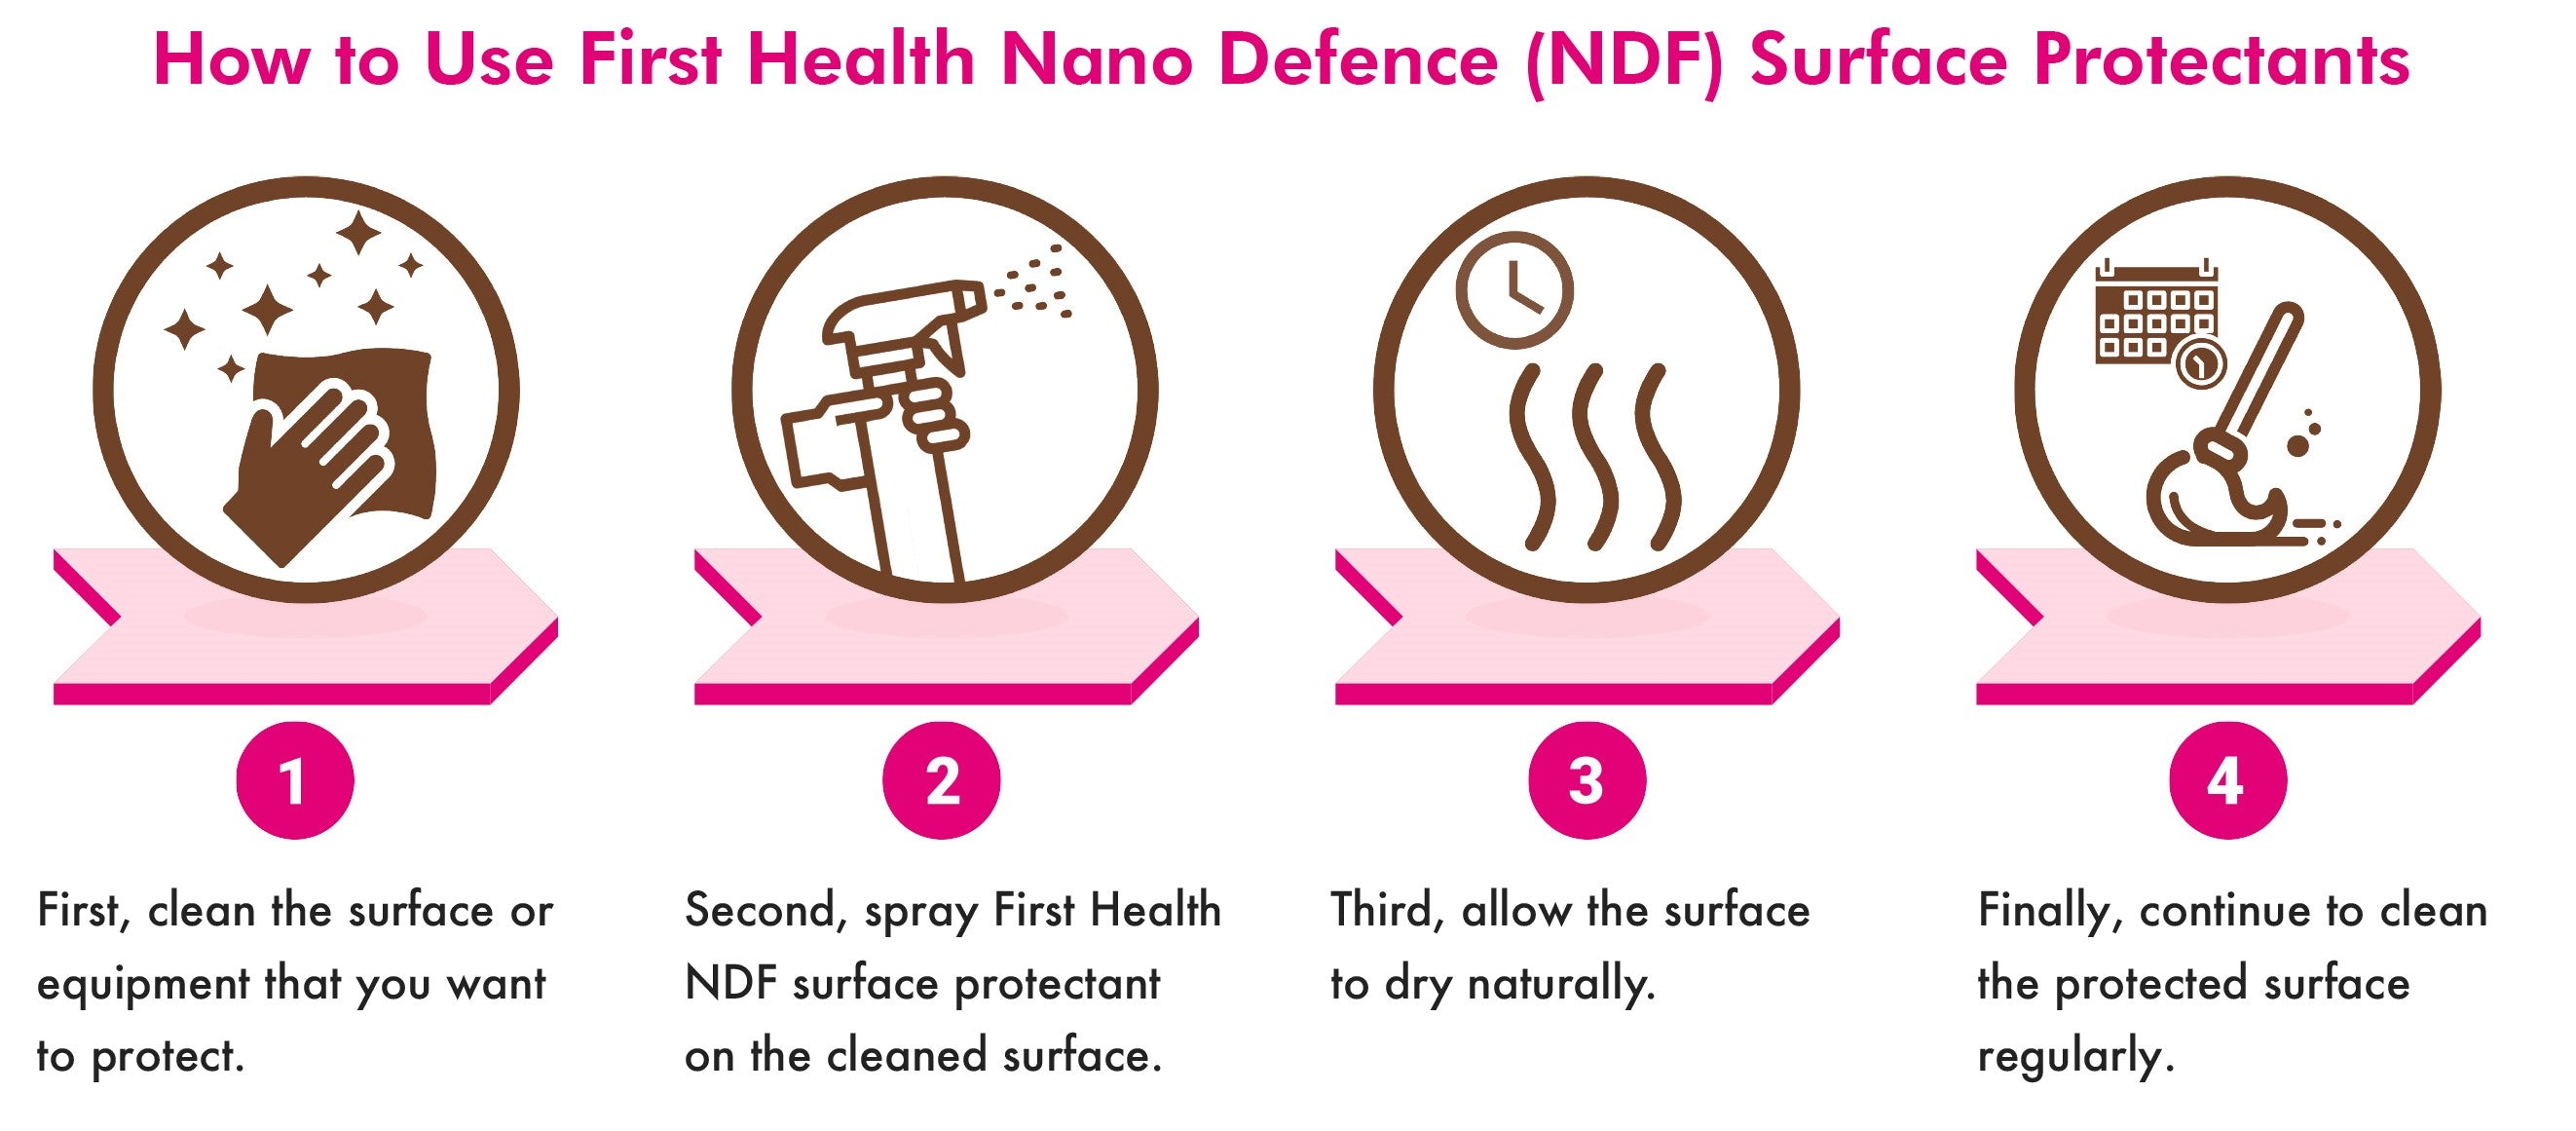 In four simple steps, consumers can achieve long lasting protection on hard surfaces with any of First Health's easy-to- use NDF surface protectants